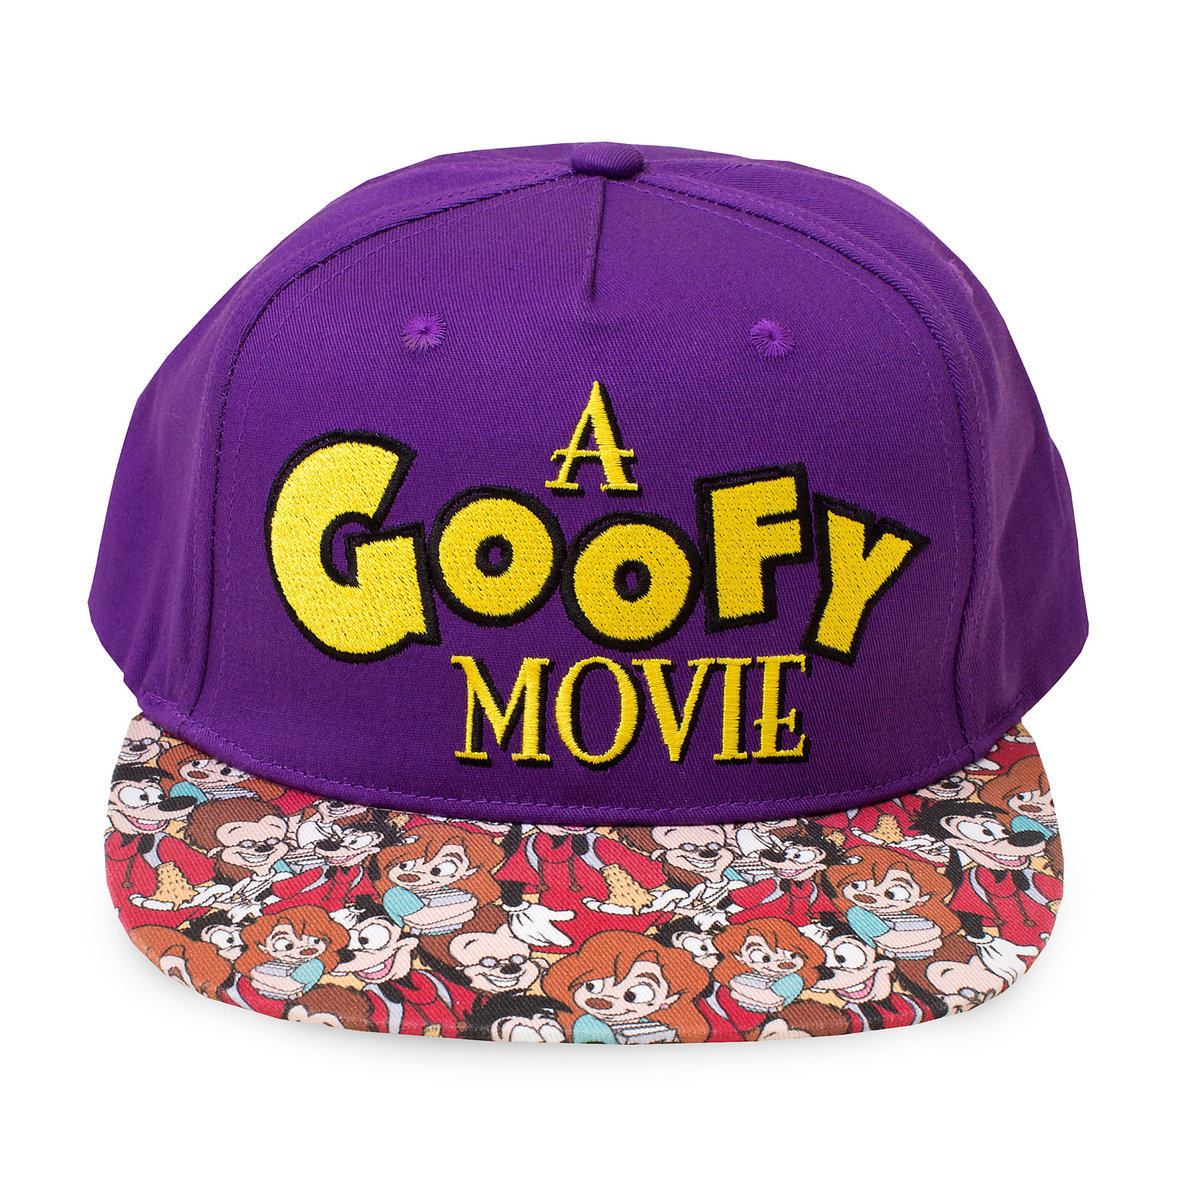 3f65eb738f144 Product Image of A Goofy Movie Baseball Cap for Adults by Cakeworthy   1